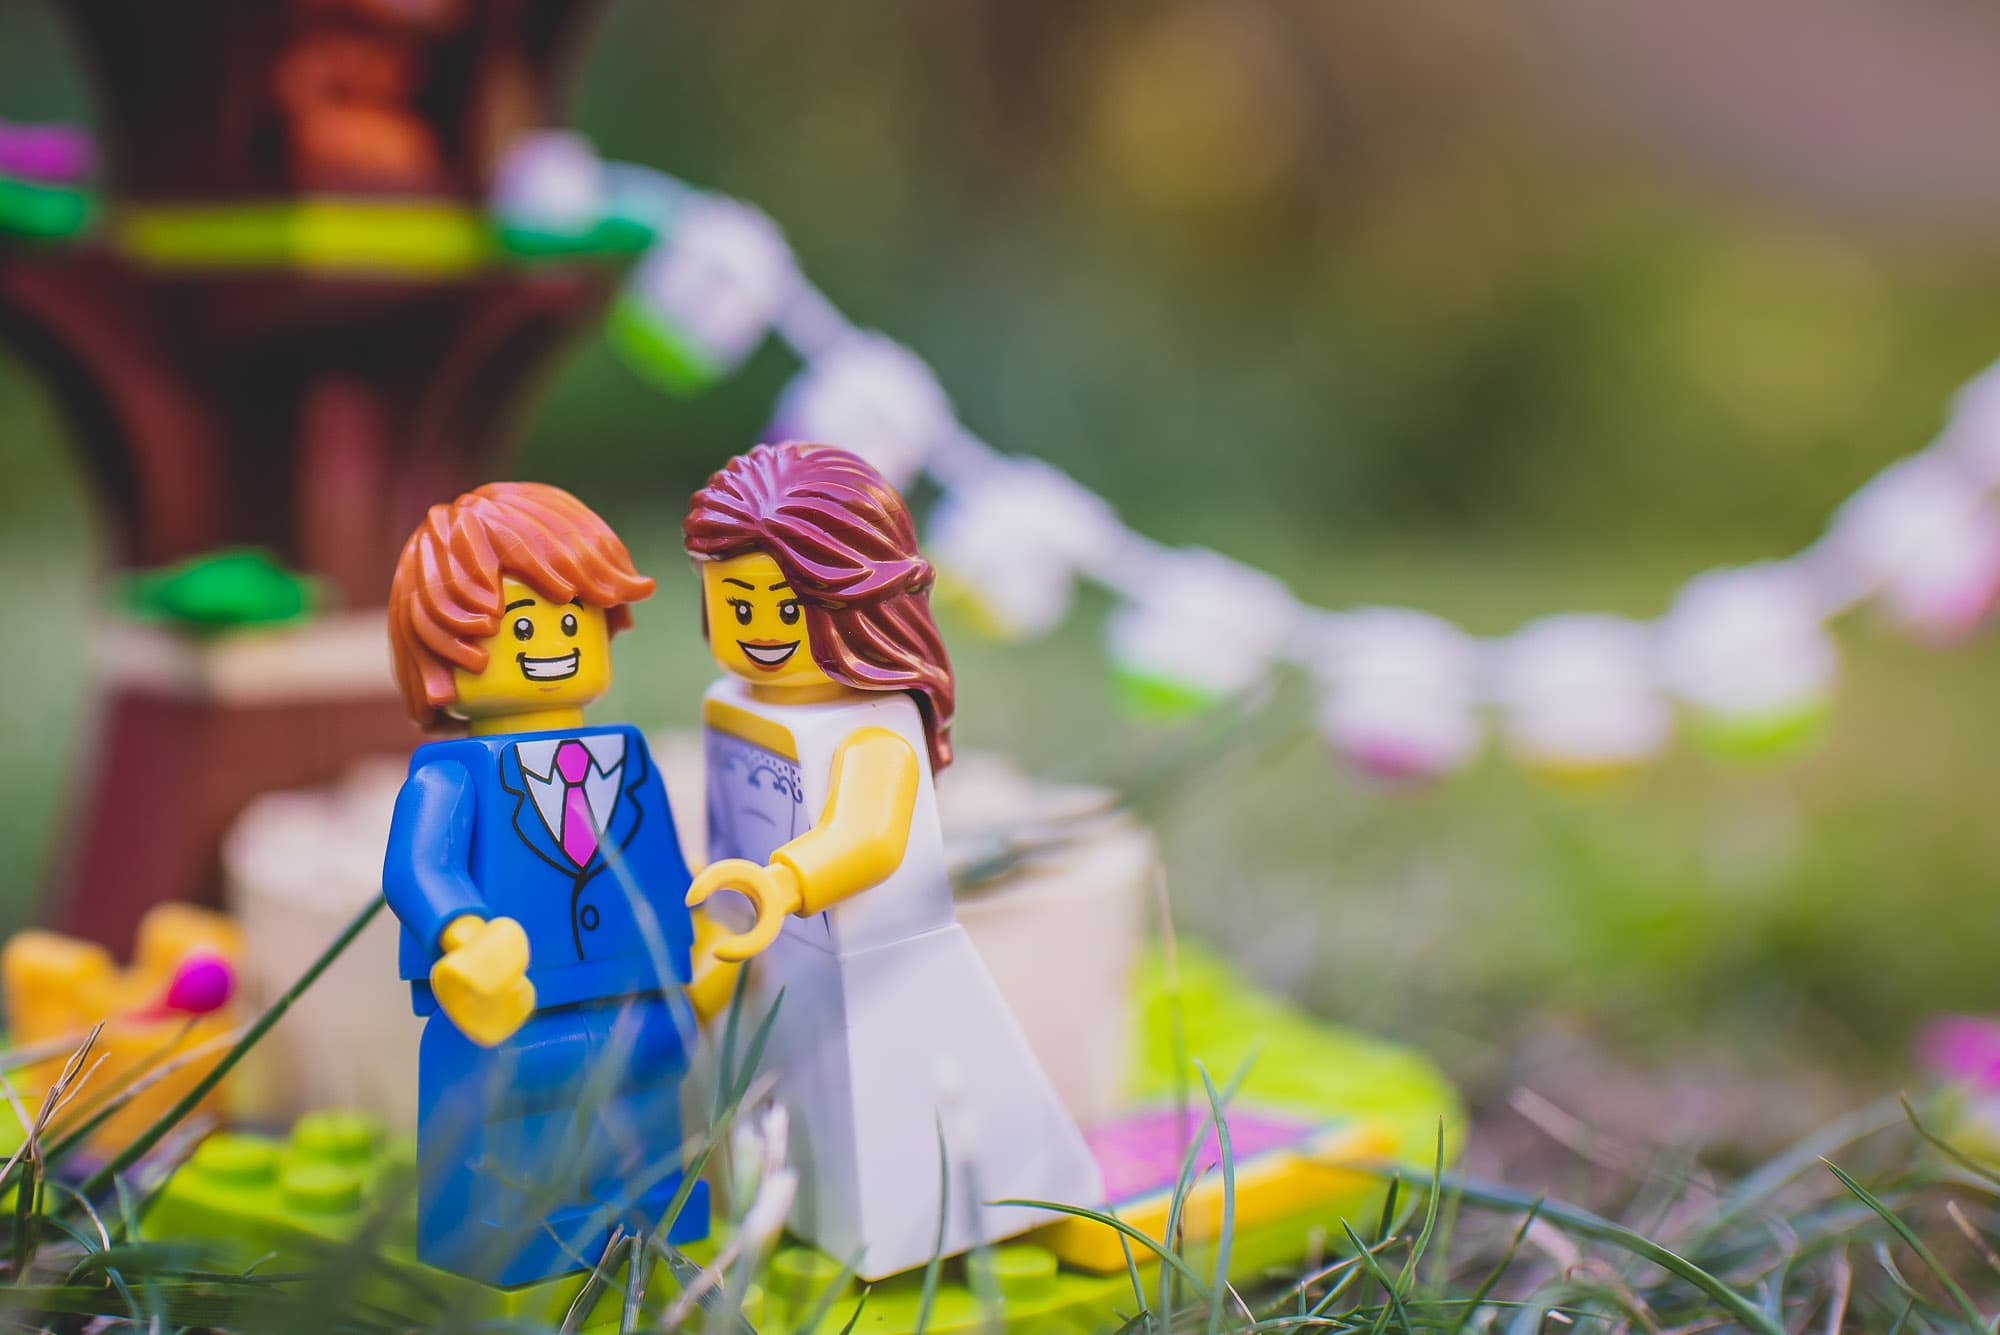 Boho Wedding Photographer | Festival Style Lego Wedding